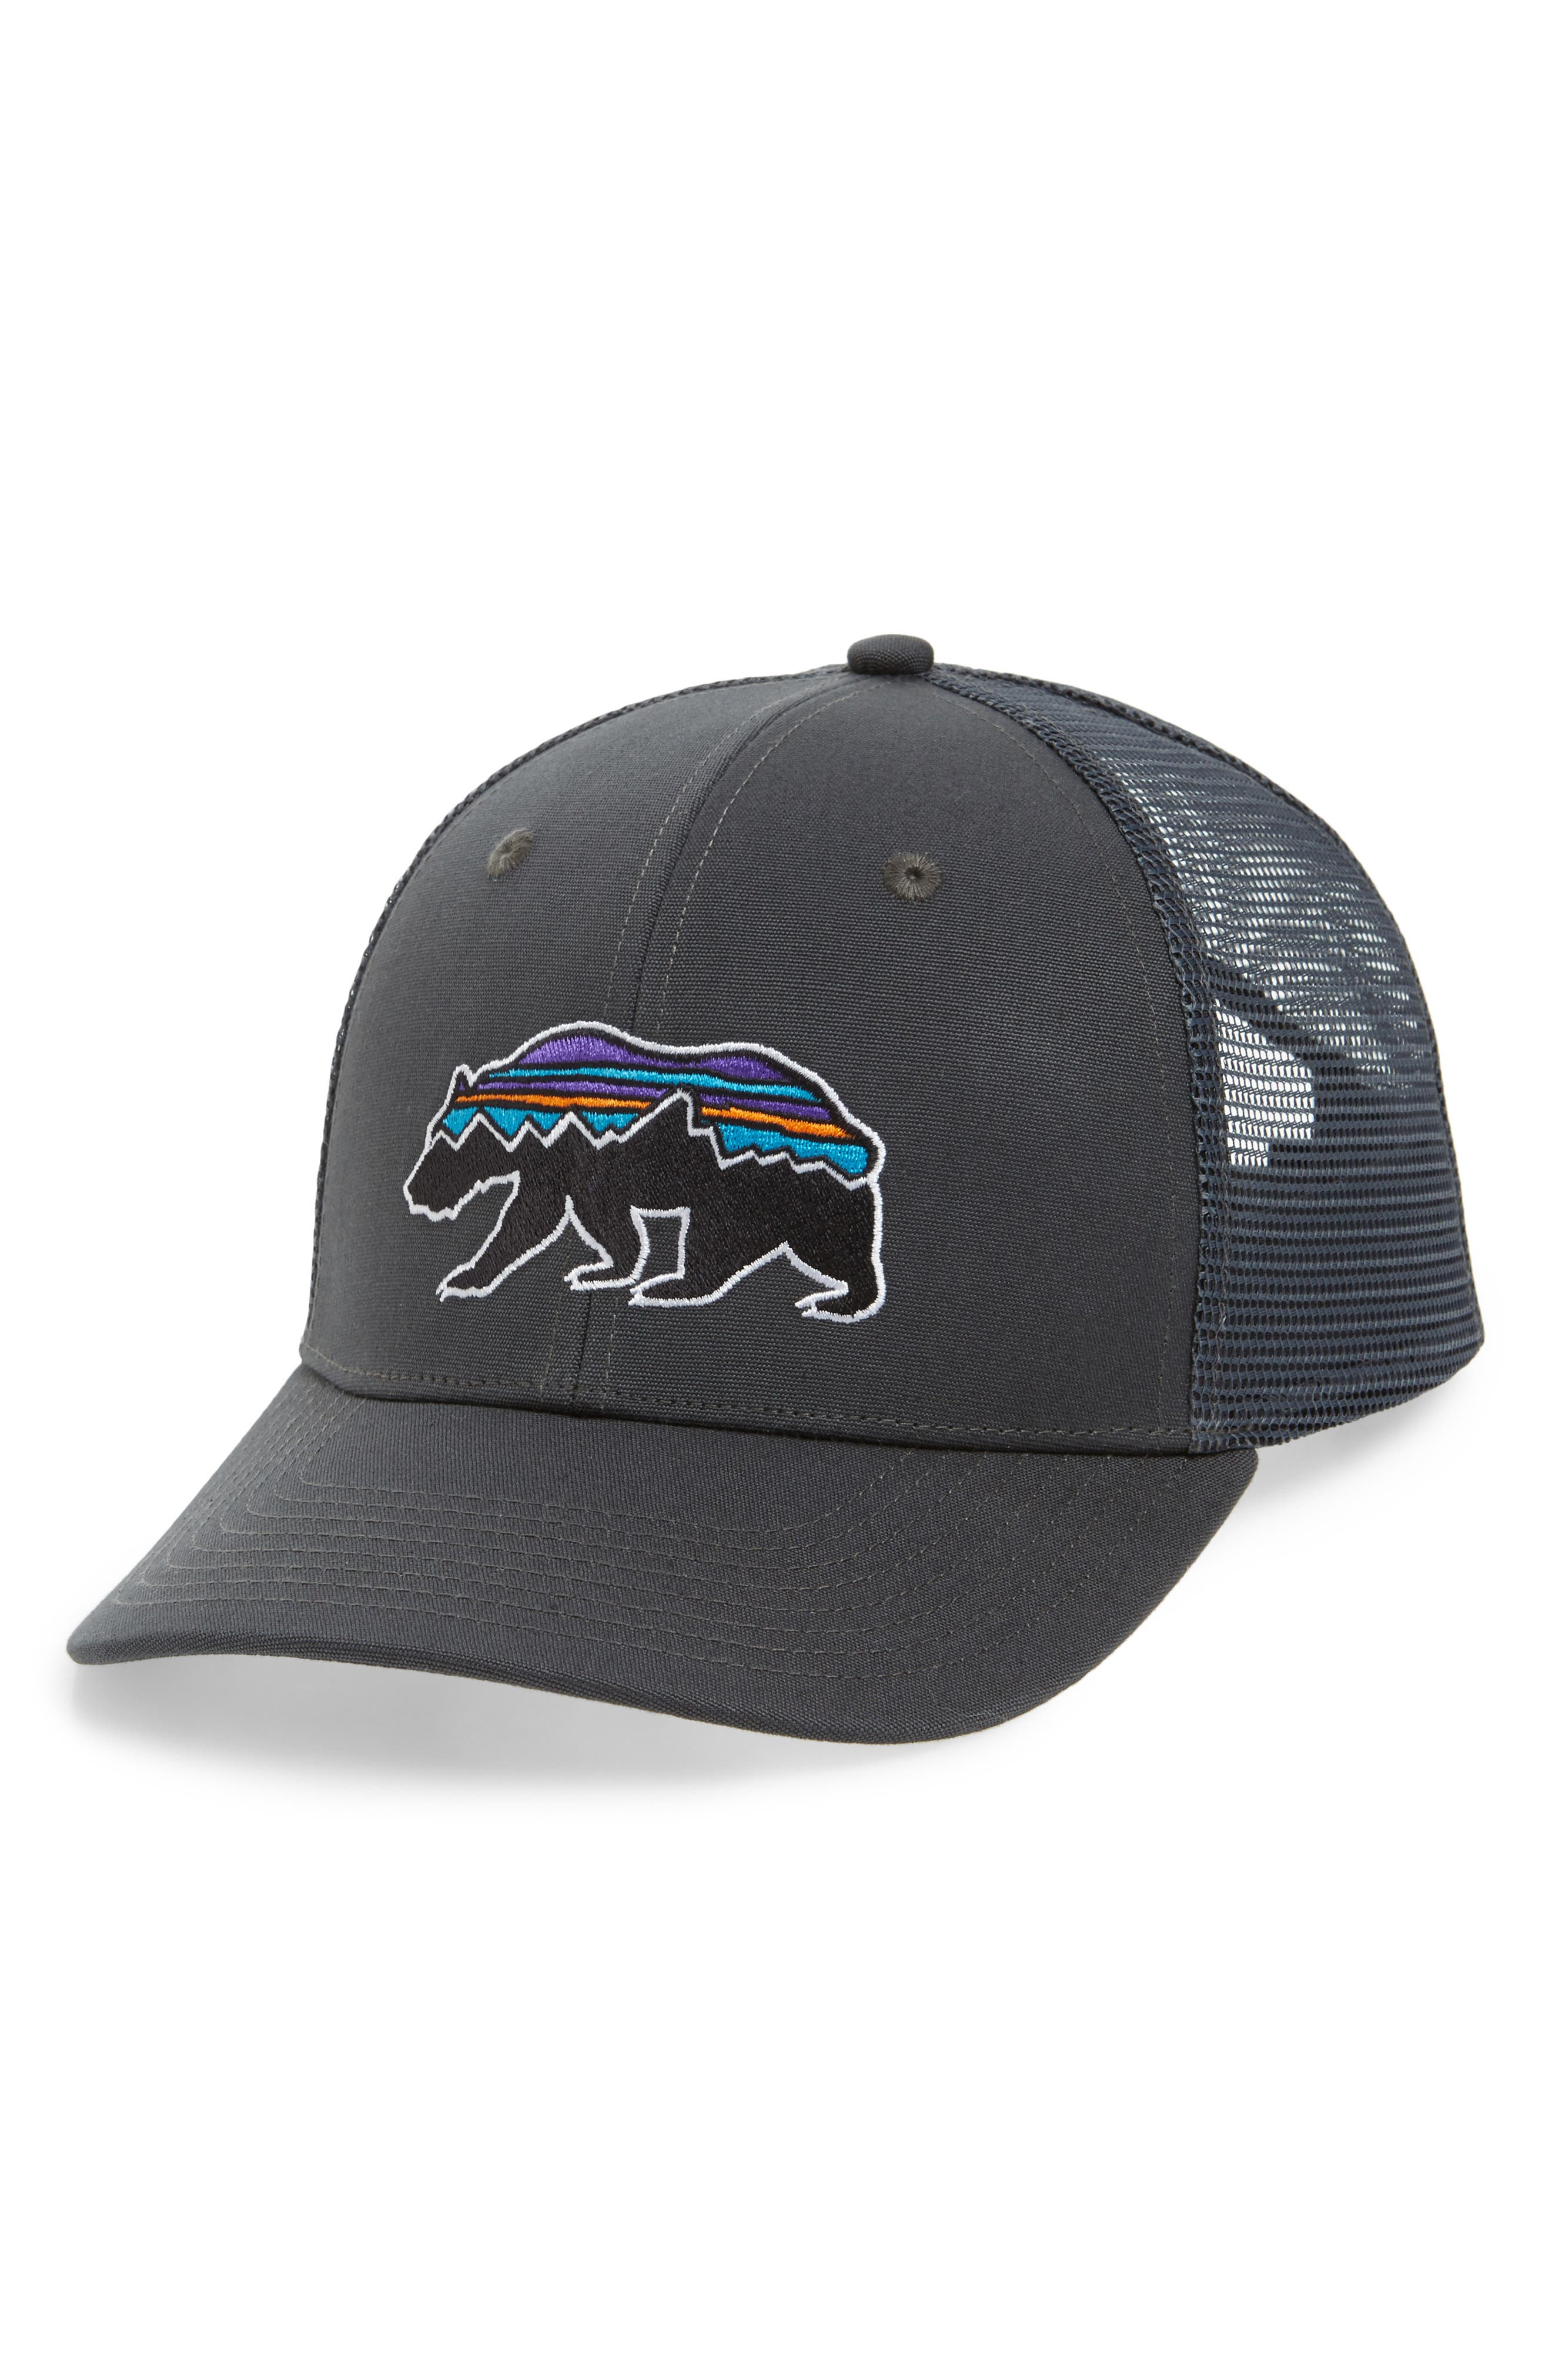 Fitz Roy Bear Trucker Cap,                             Main thumbnail 1, color,                             FORGE GREY